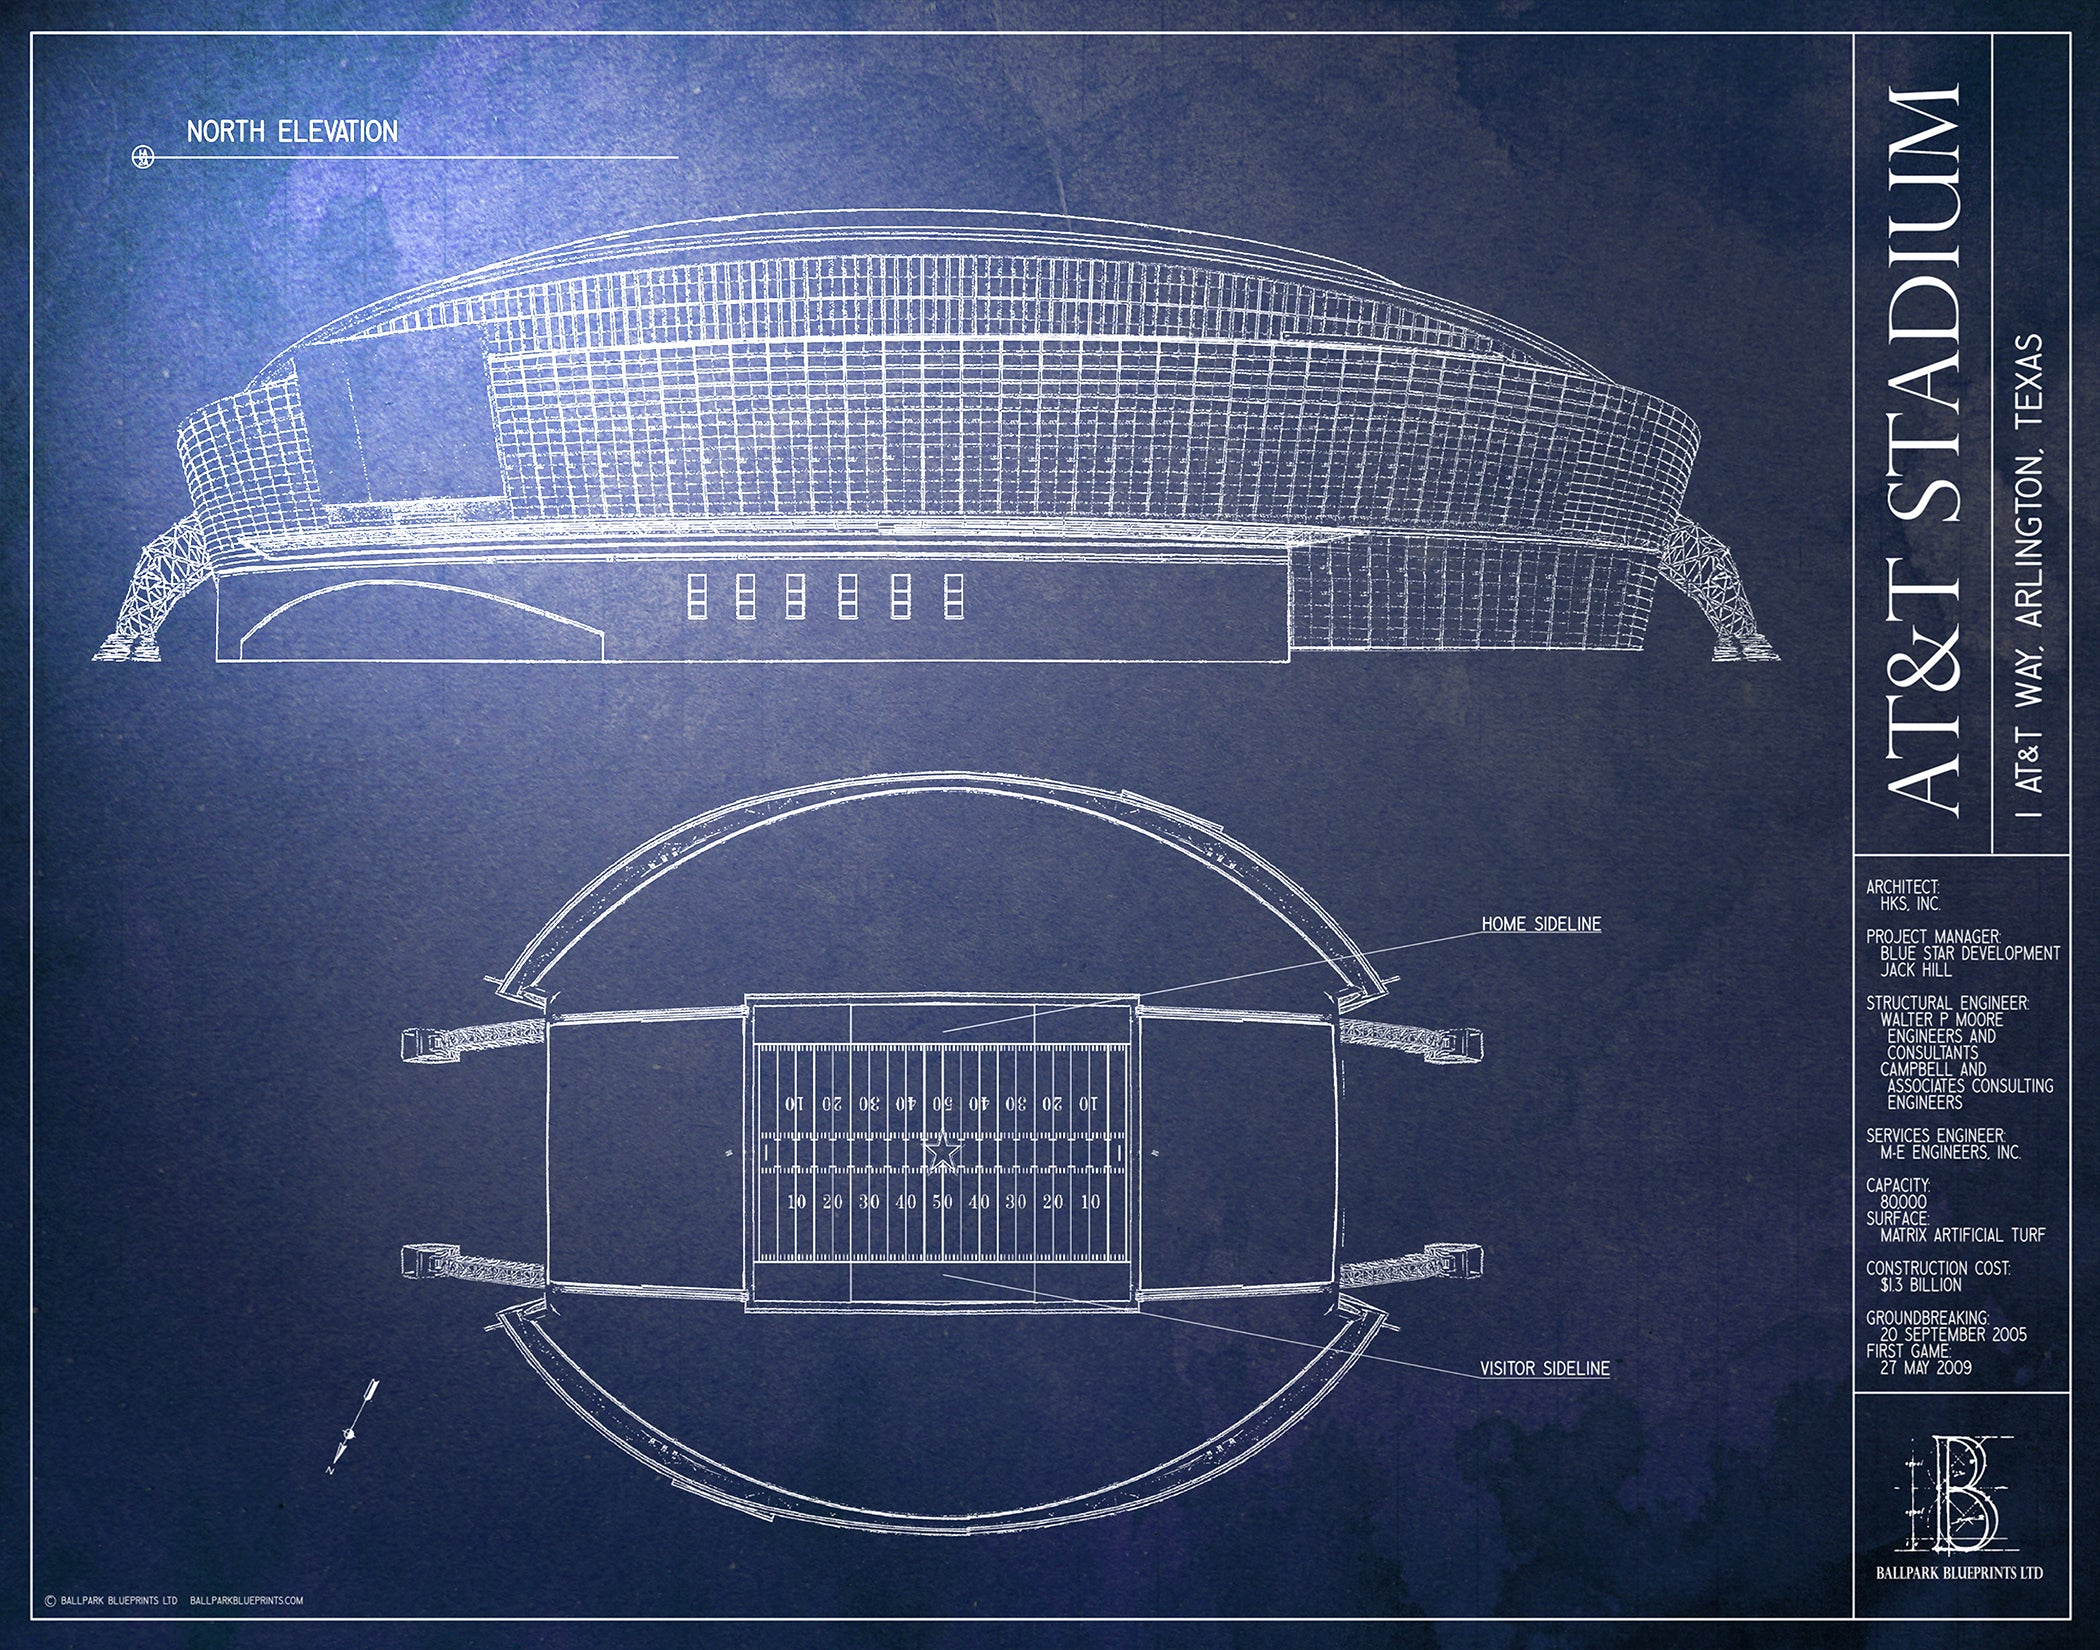 Att stadium dallas cowboys cowboys fan gifts ballpark blueprints att stadium dallas cowboys malvernweather